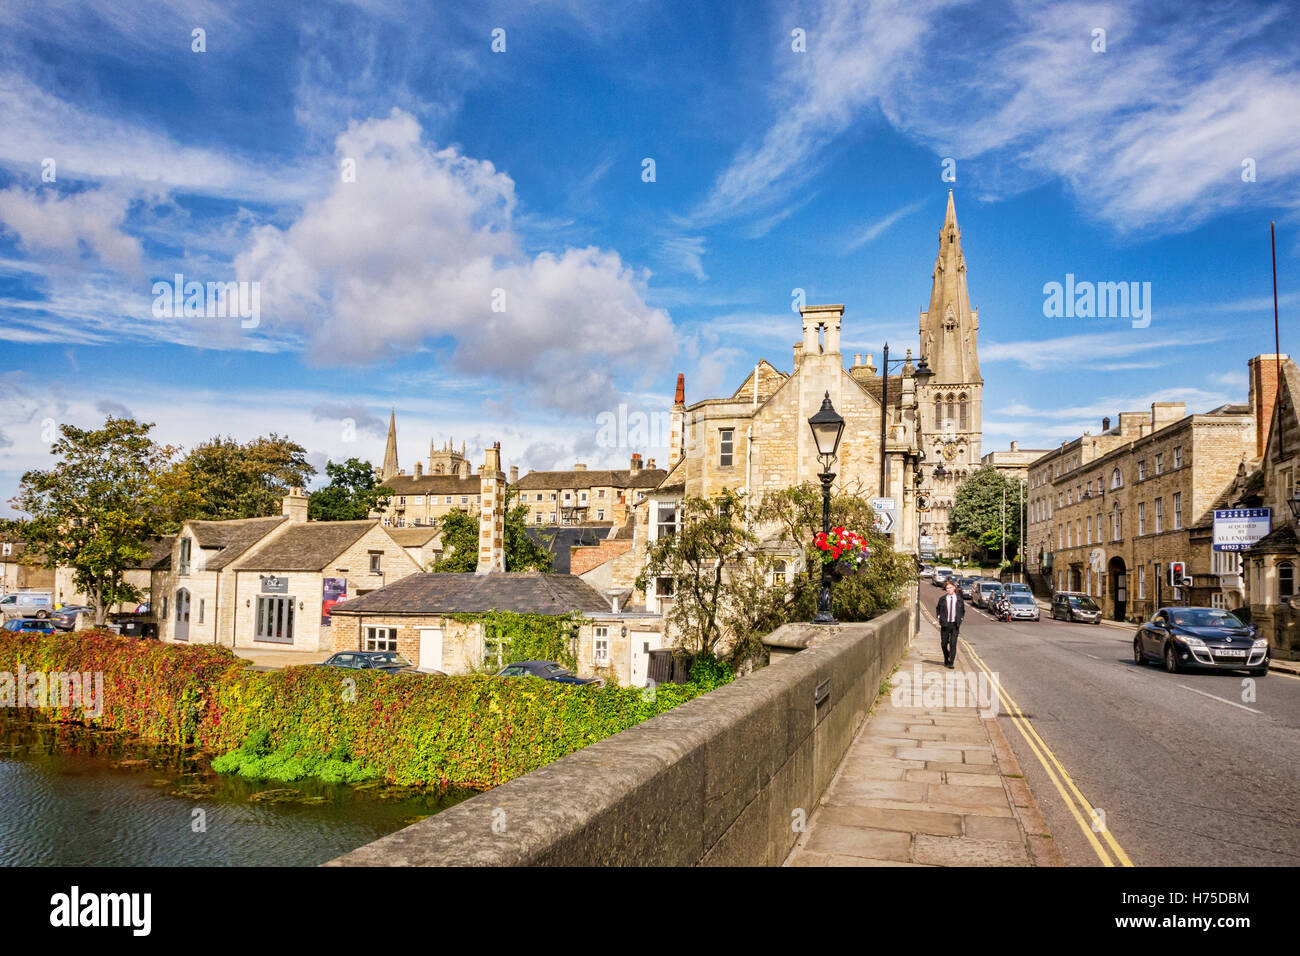 Speed Dating à Stamford Lincolnshire